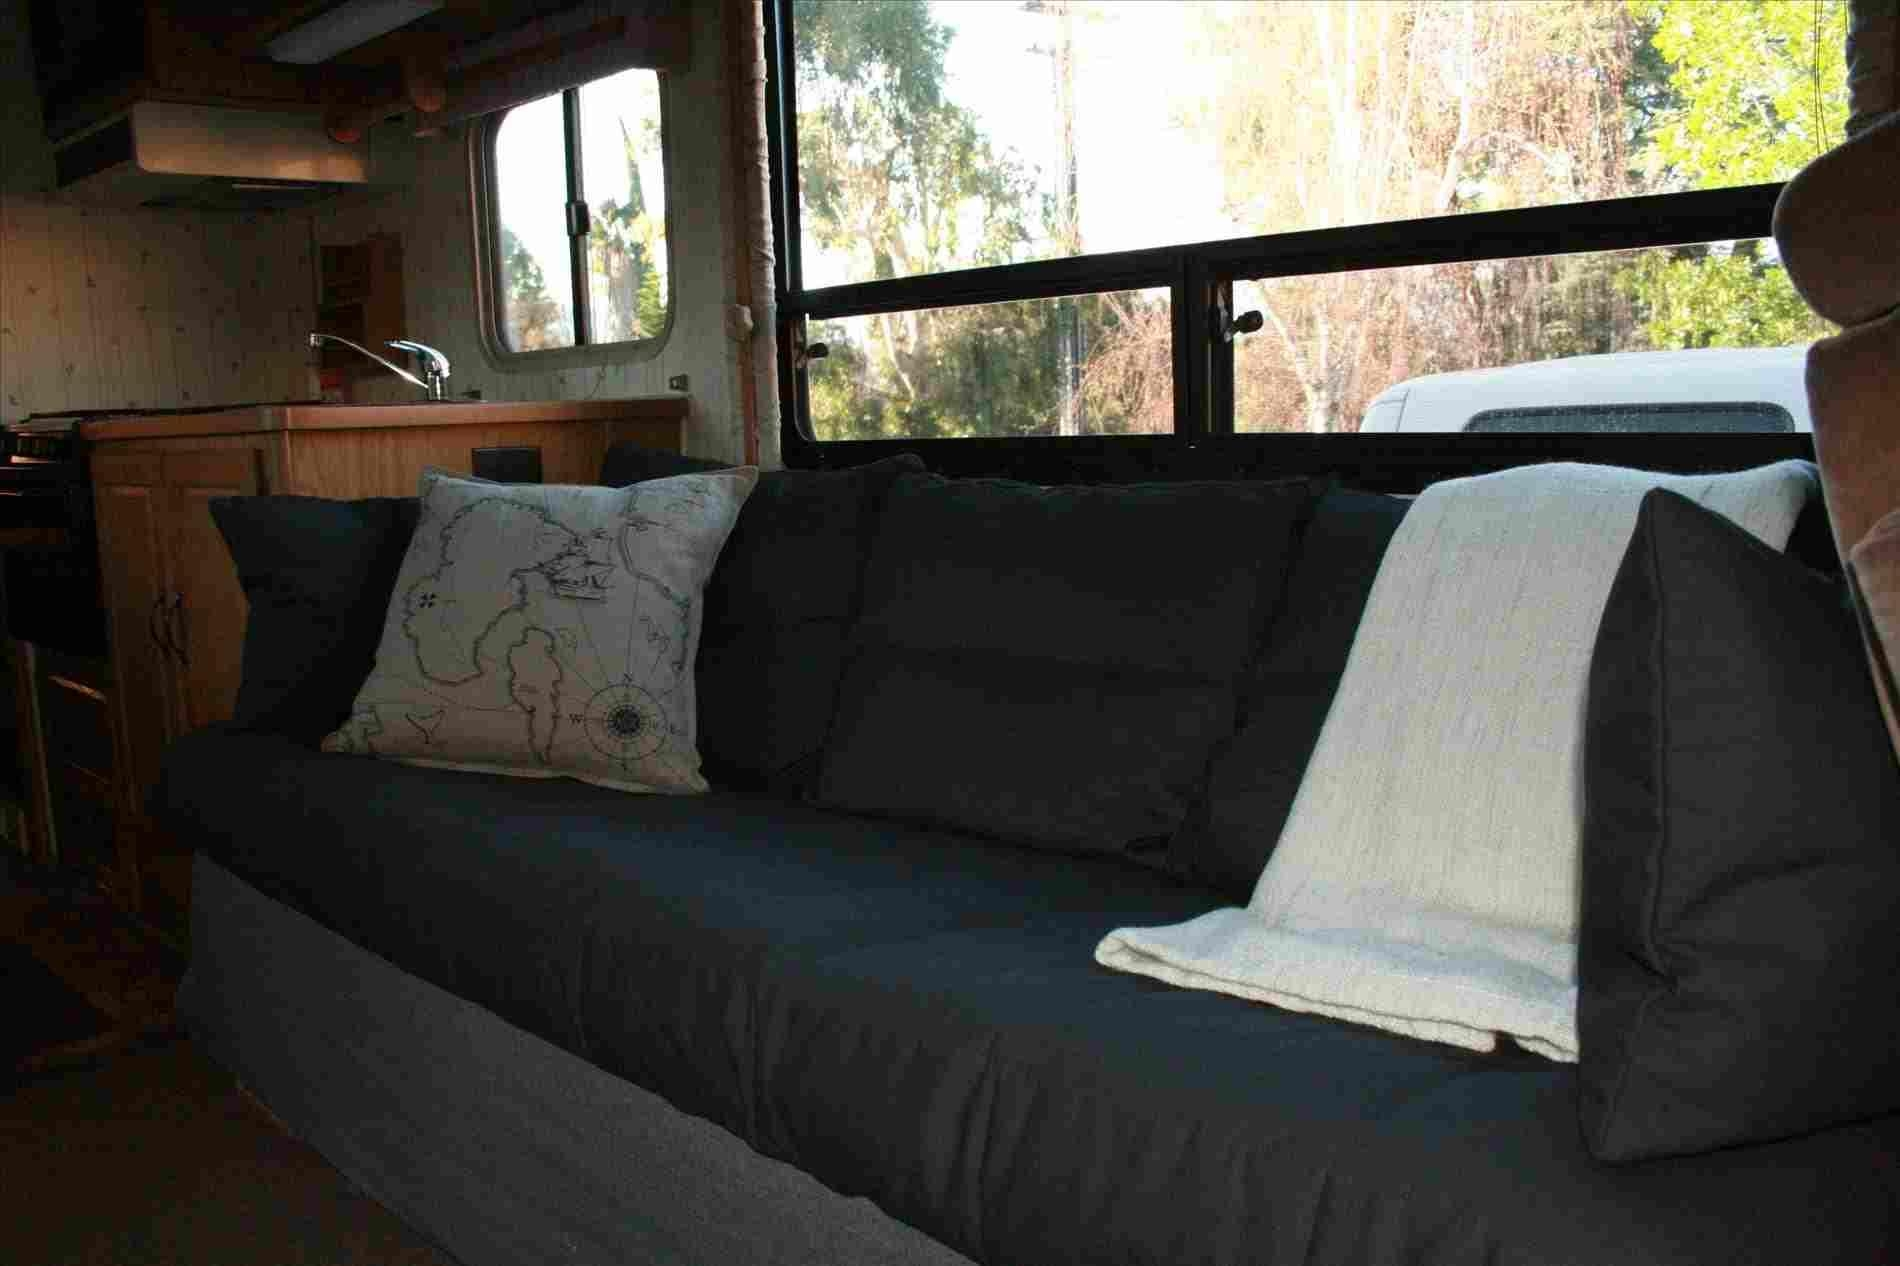 Jackknife Sofa For Rv | Sofa And Chair Information Inside Rv Jackknife Sofas (View 14 of 20)